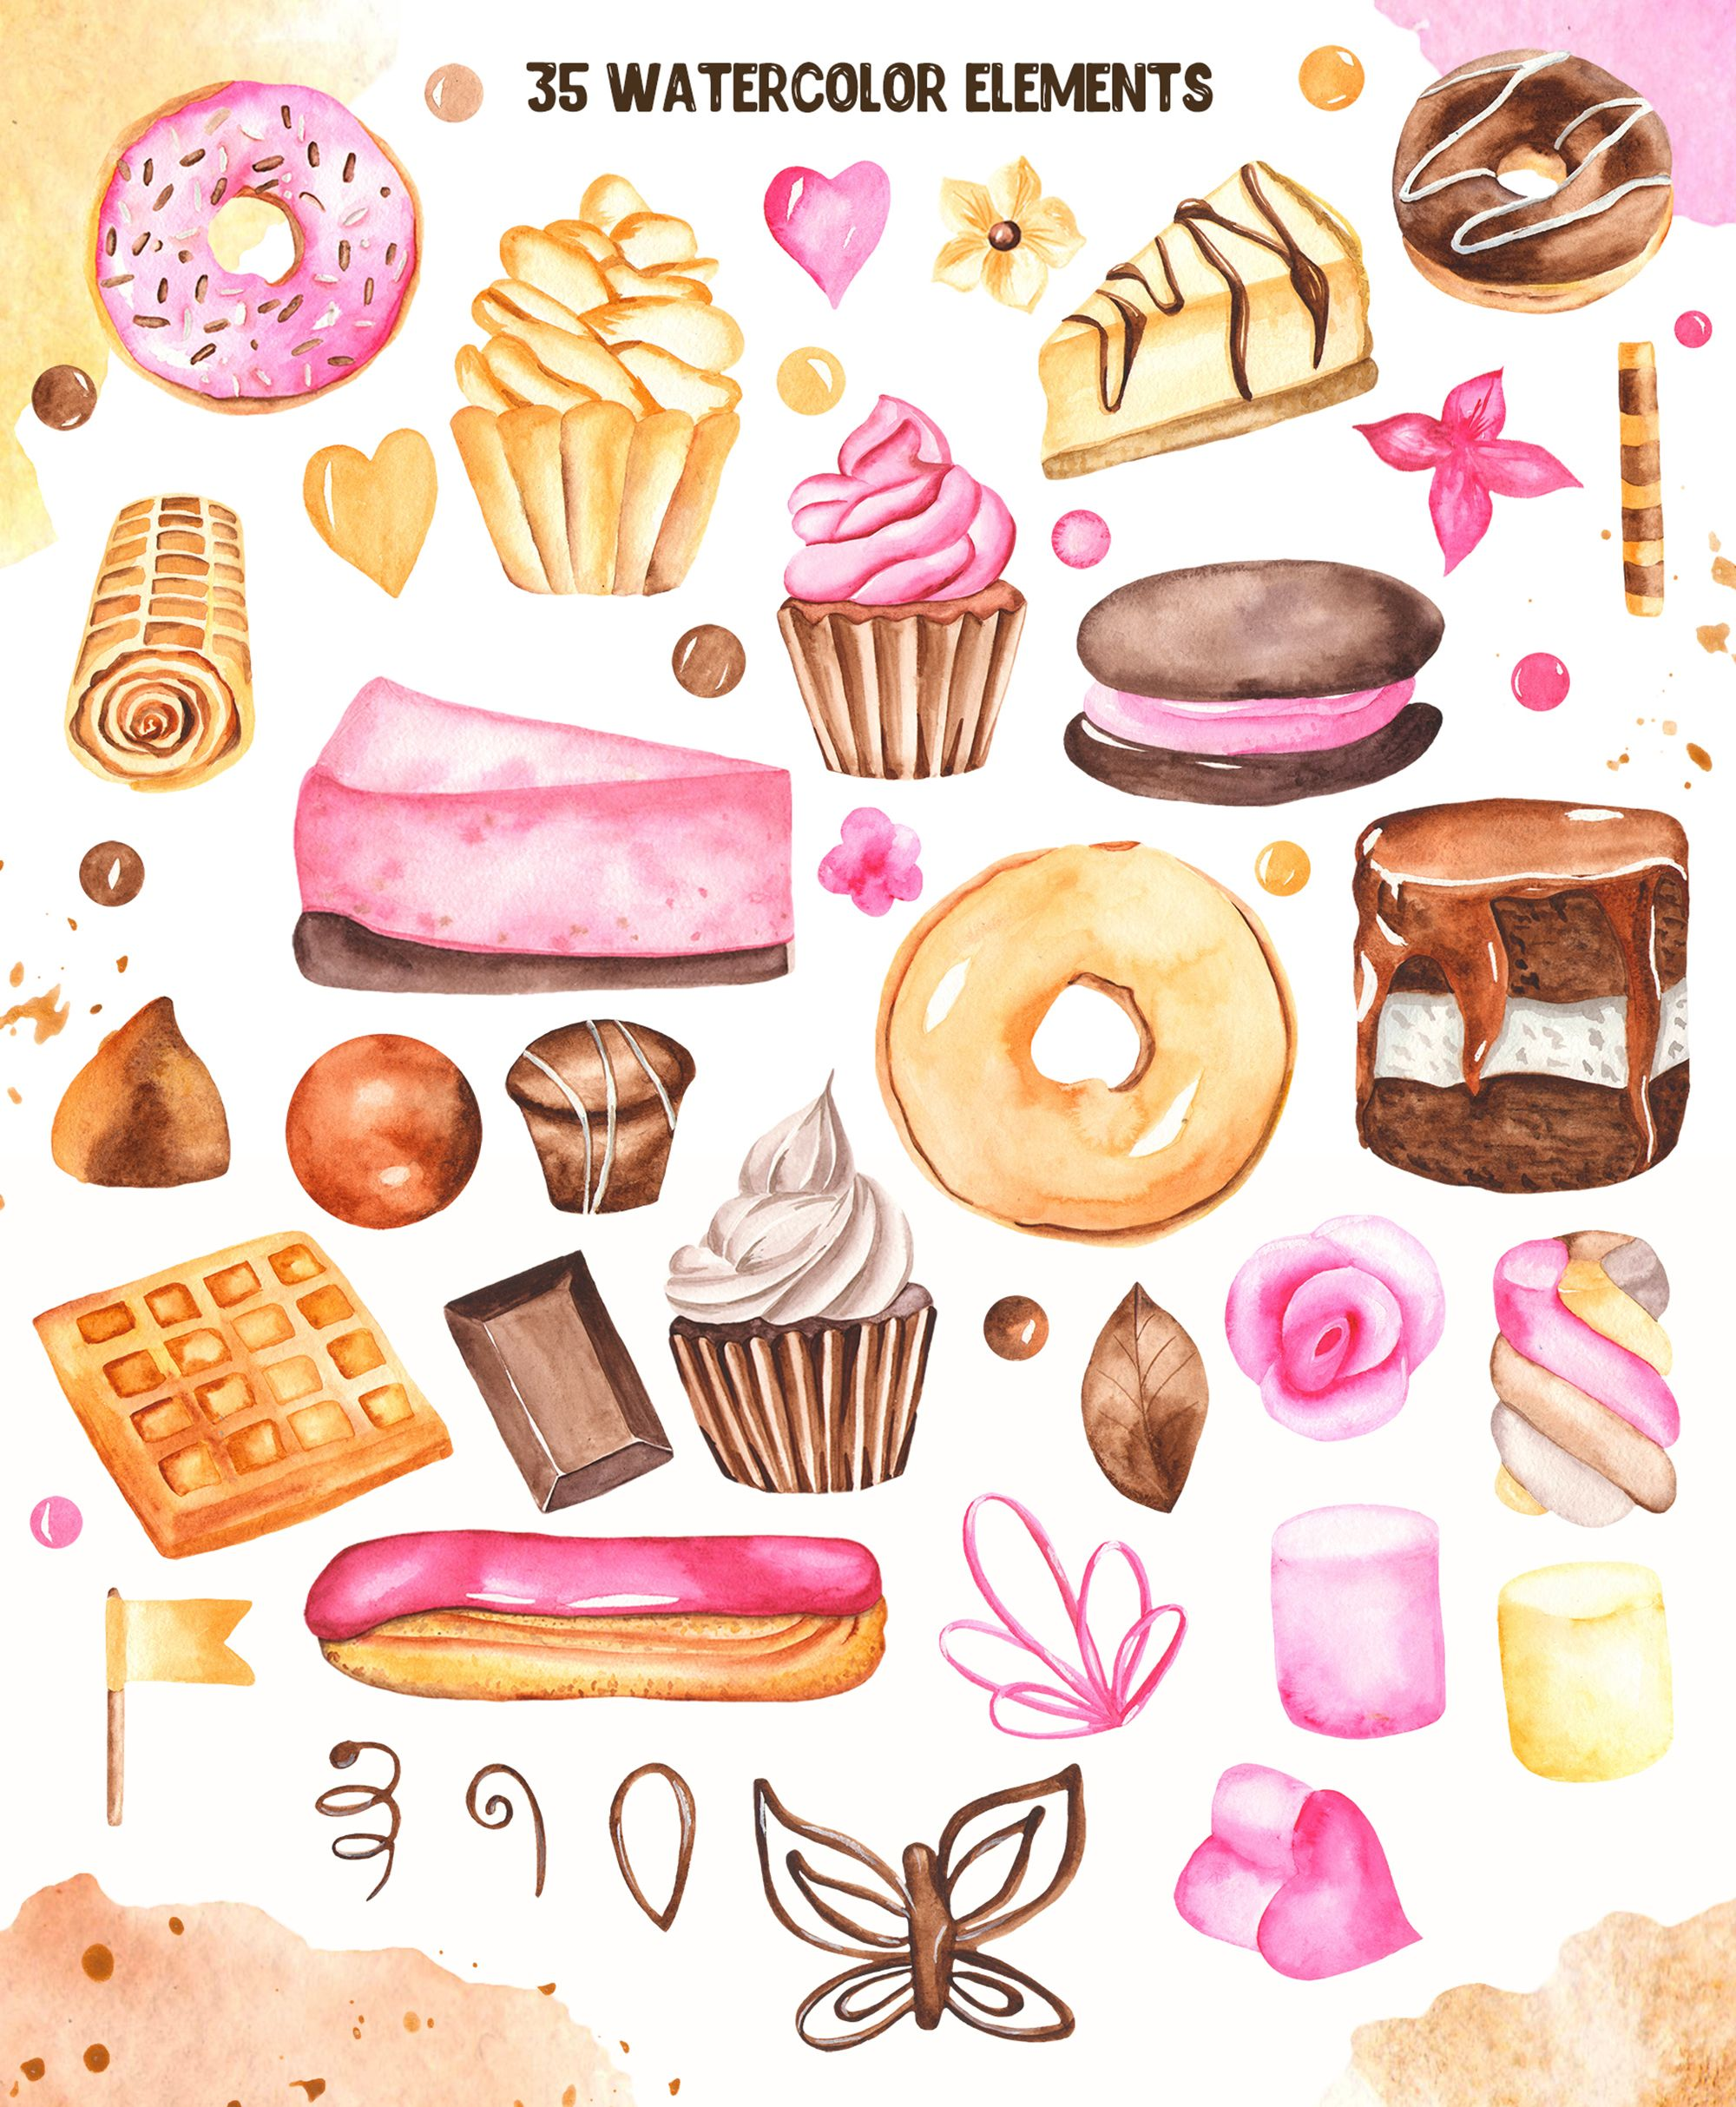 Watercolor Sweets Clipart Illustrations Of Donuts Cakes Etsy In 2021 Sweets Clipart Cake Illustration Food Illustration Art